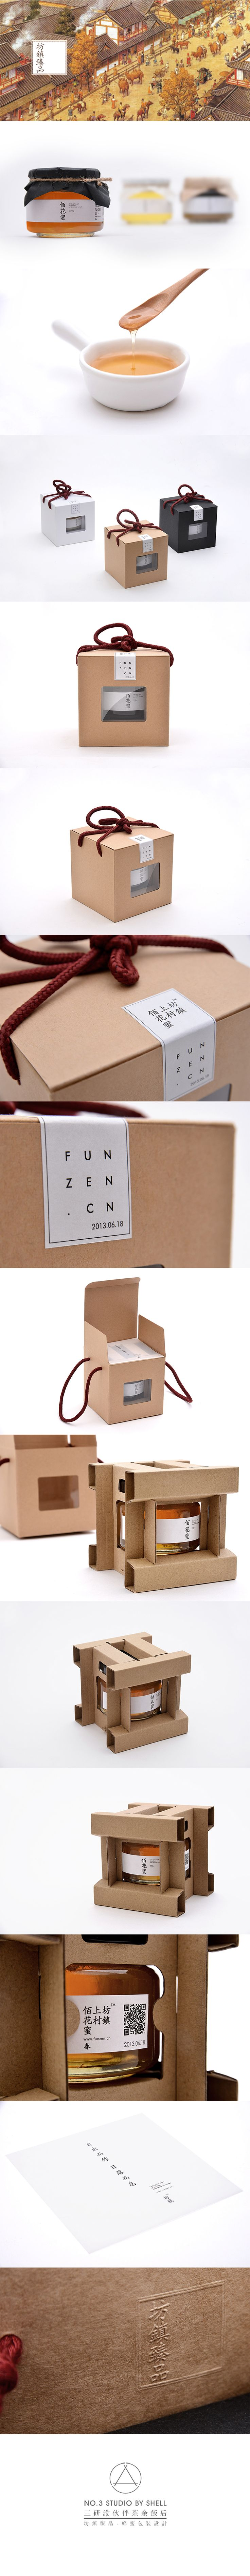 "[ 三研设 (Via Xini Bittersweet - ""Packaging"" board)] http://www.pinterest.com/xinixinixinita/packaging/"